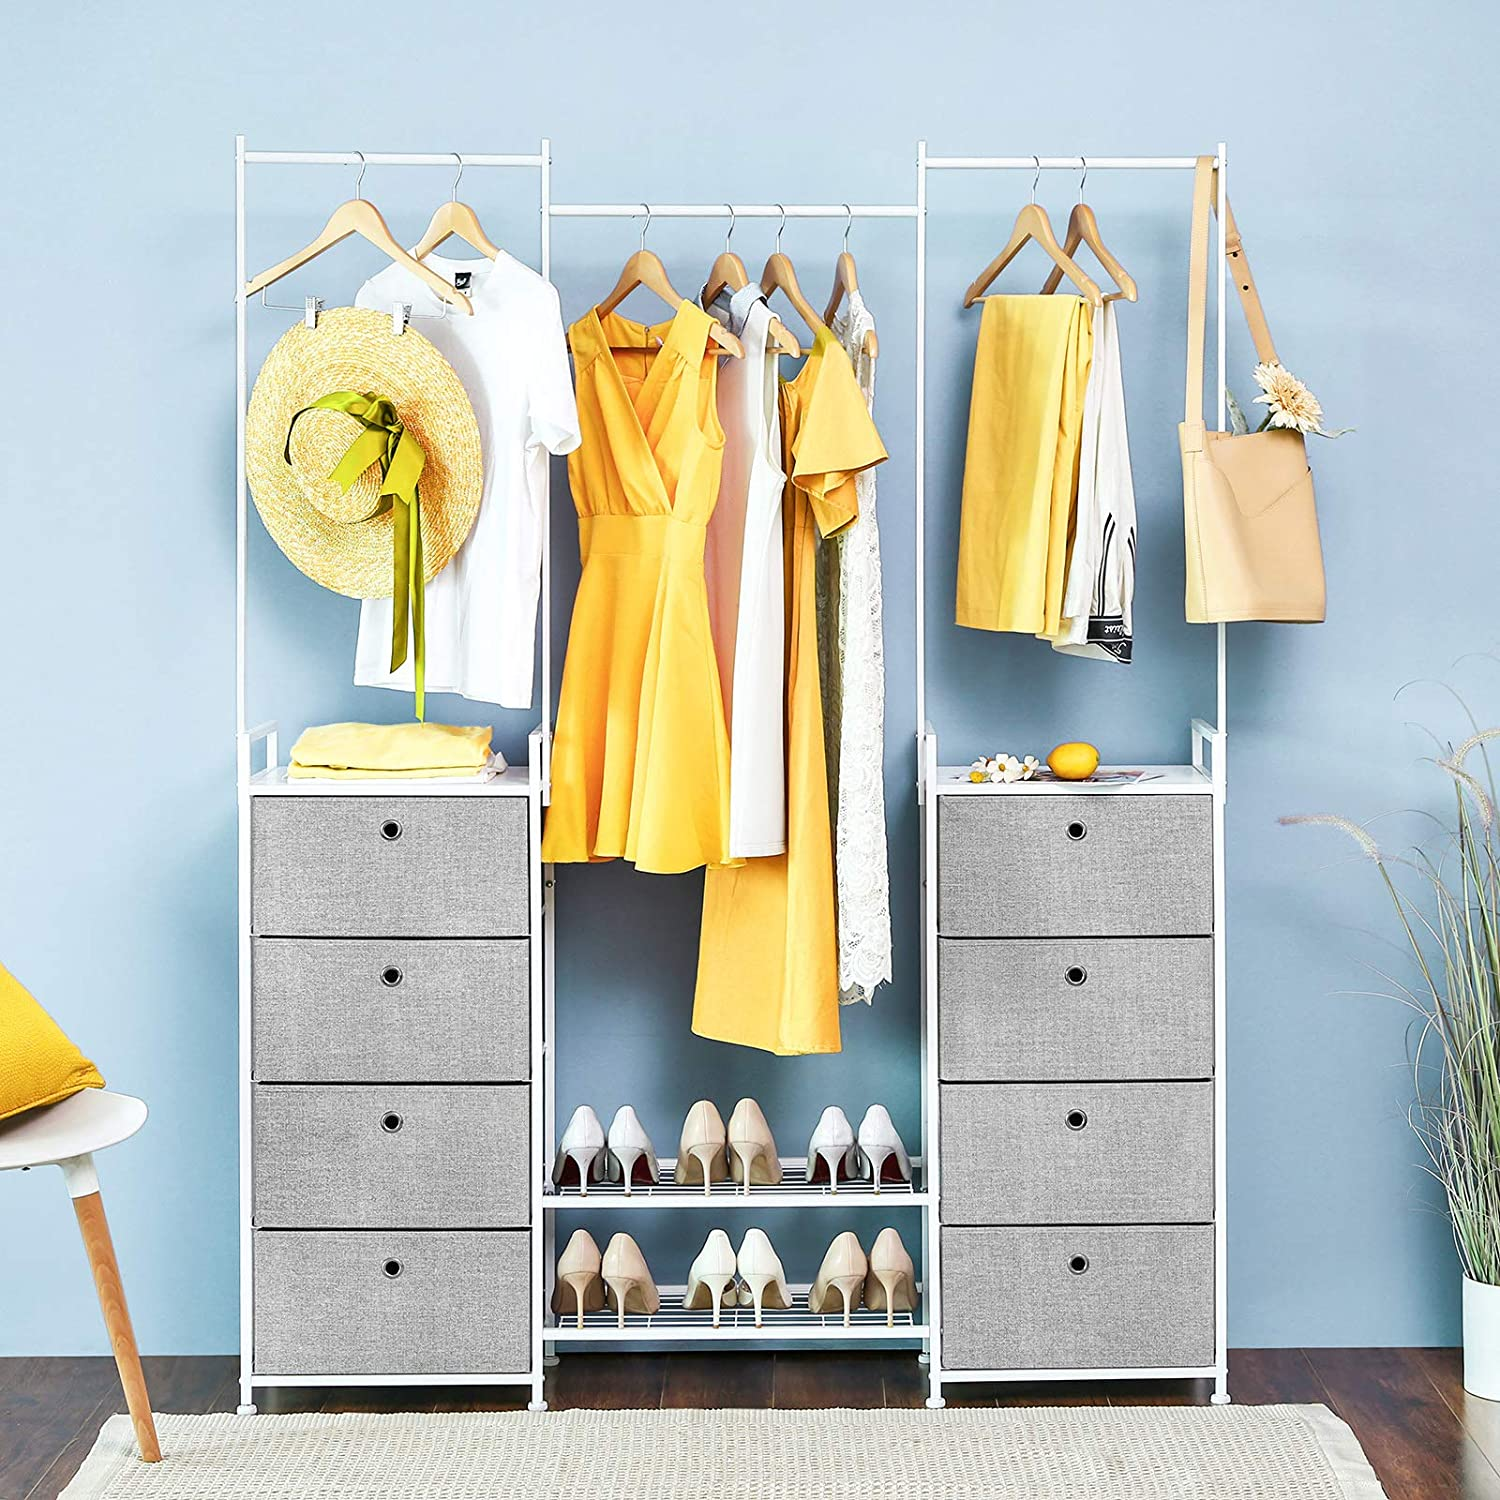 SONGMICS Multifunctional Drawer Dresser with Clothes Rack Storage Tower with Metal Frame Wooden Tops Gray ULTS04G-2 Hallway Shoe Rack Storage Unit for Closet 8 Fabric Drawers